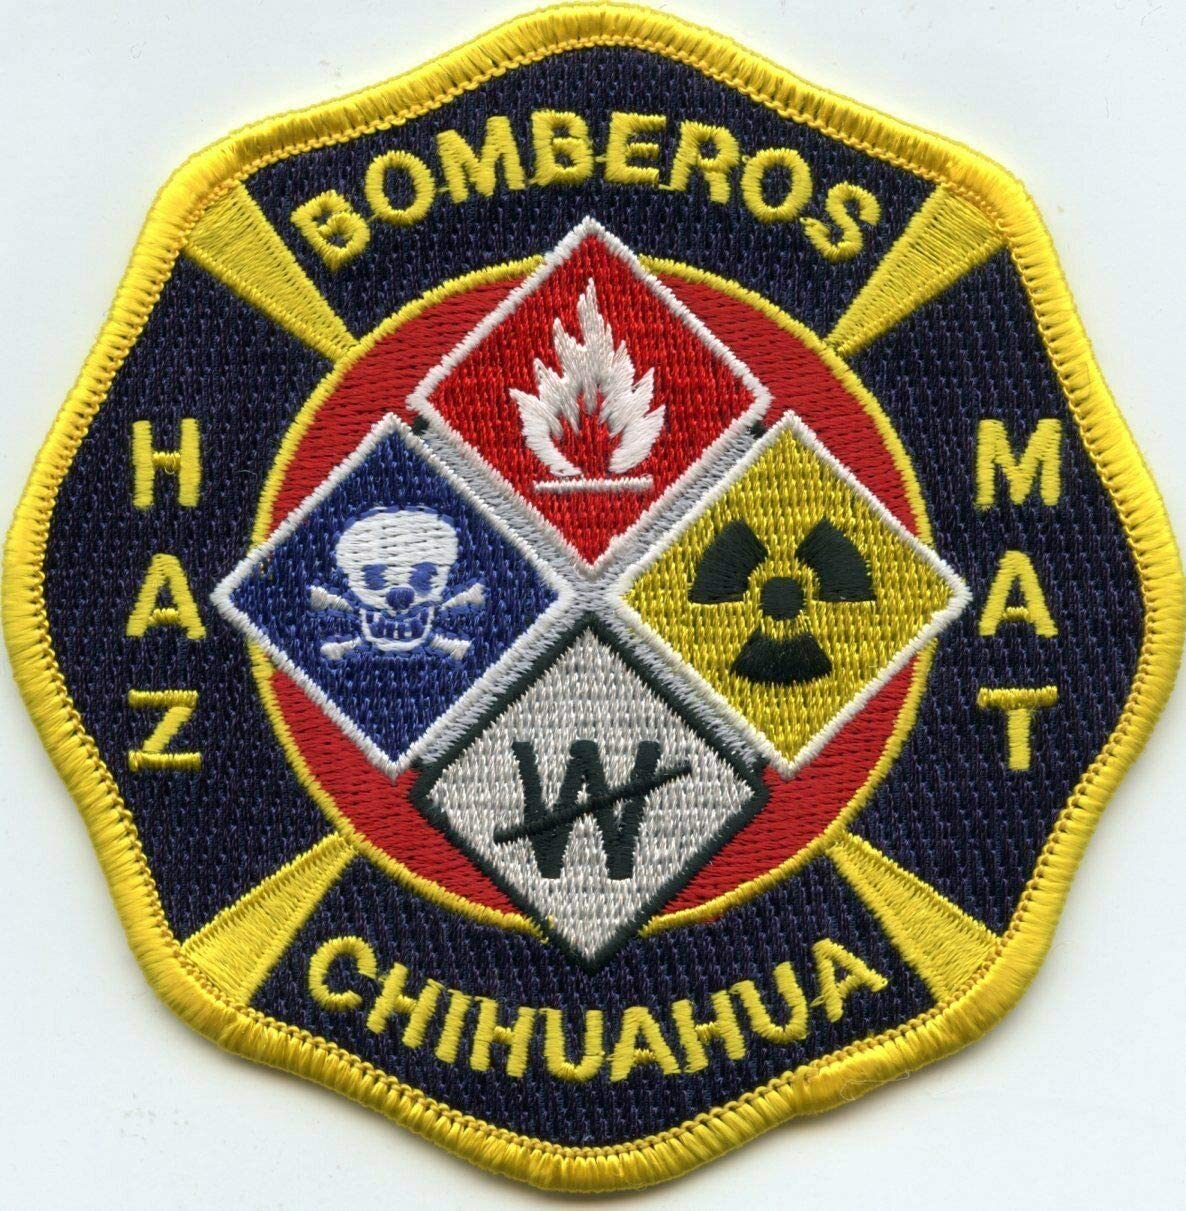 by SFI Chihuahua Mexico New product Trust type HAZ Patch BOMBEROS FIRE MAT